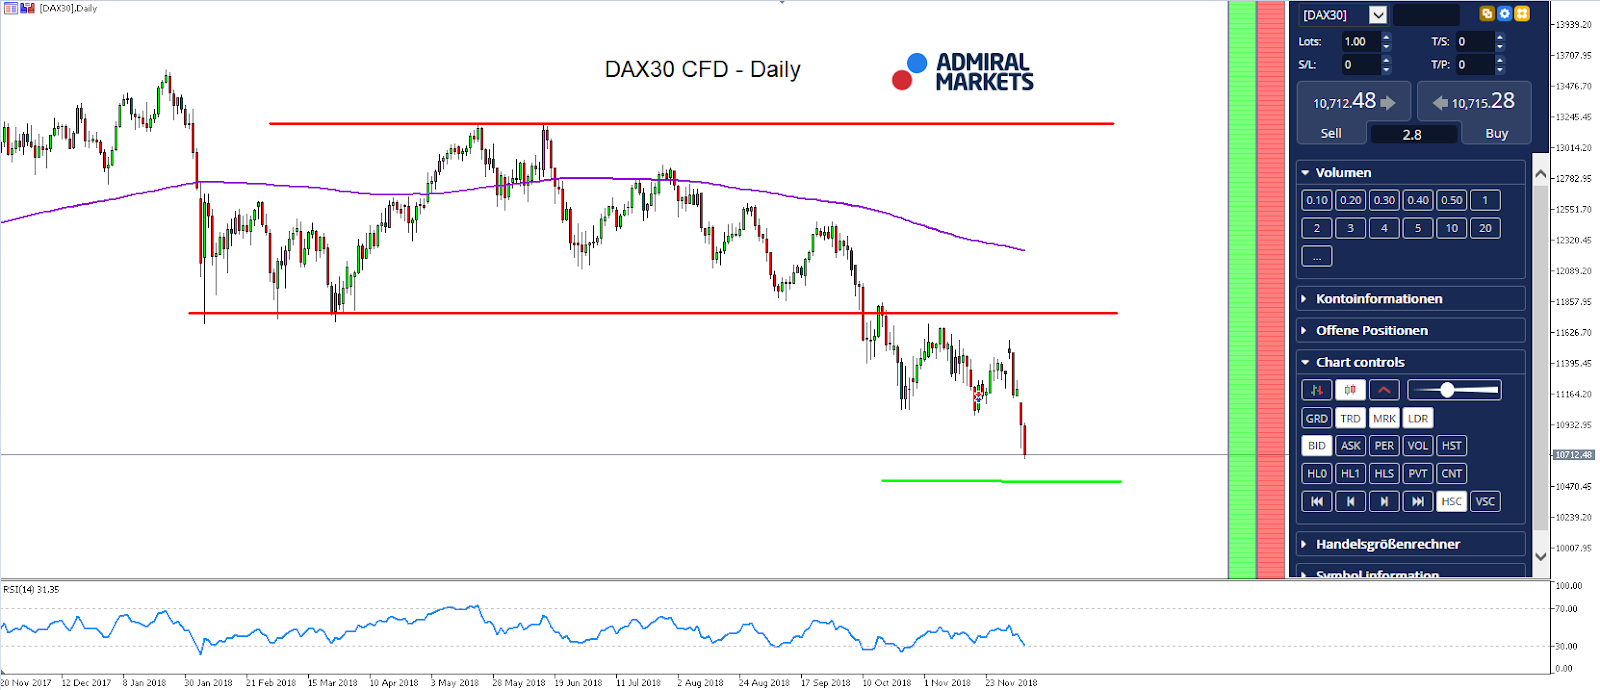 DAX30 -DAILY